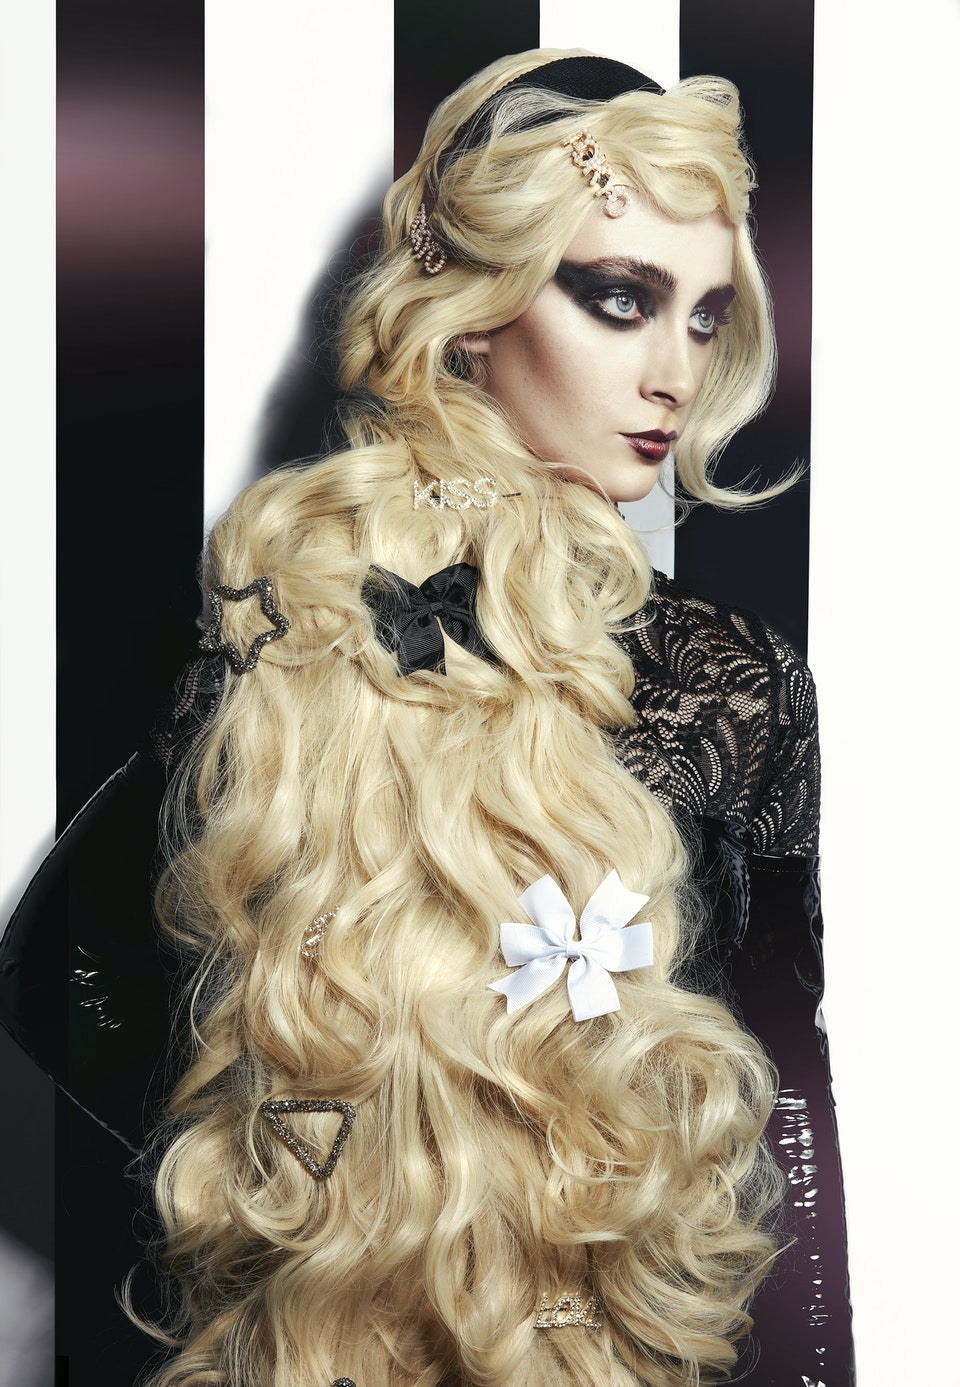 JARRED Photography - PETER MELLON - HAIR & VISION